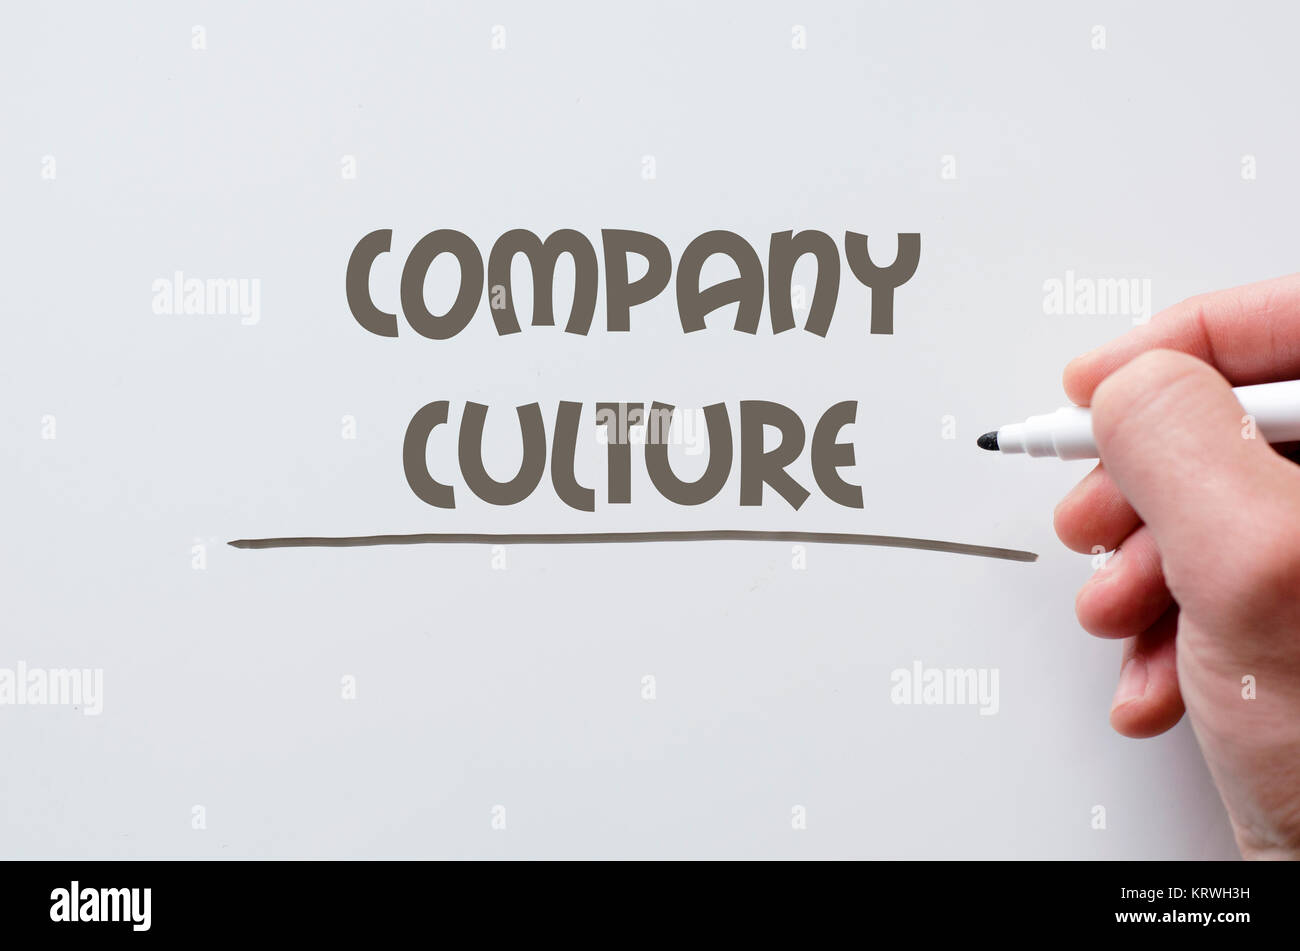 Company culture written on whiteboard - Stock Image